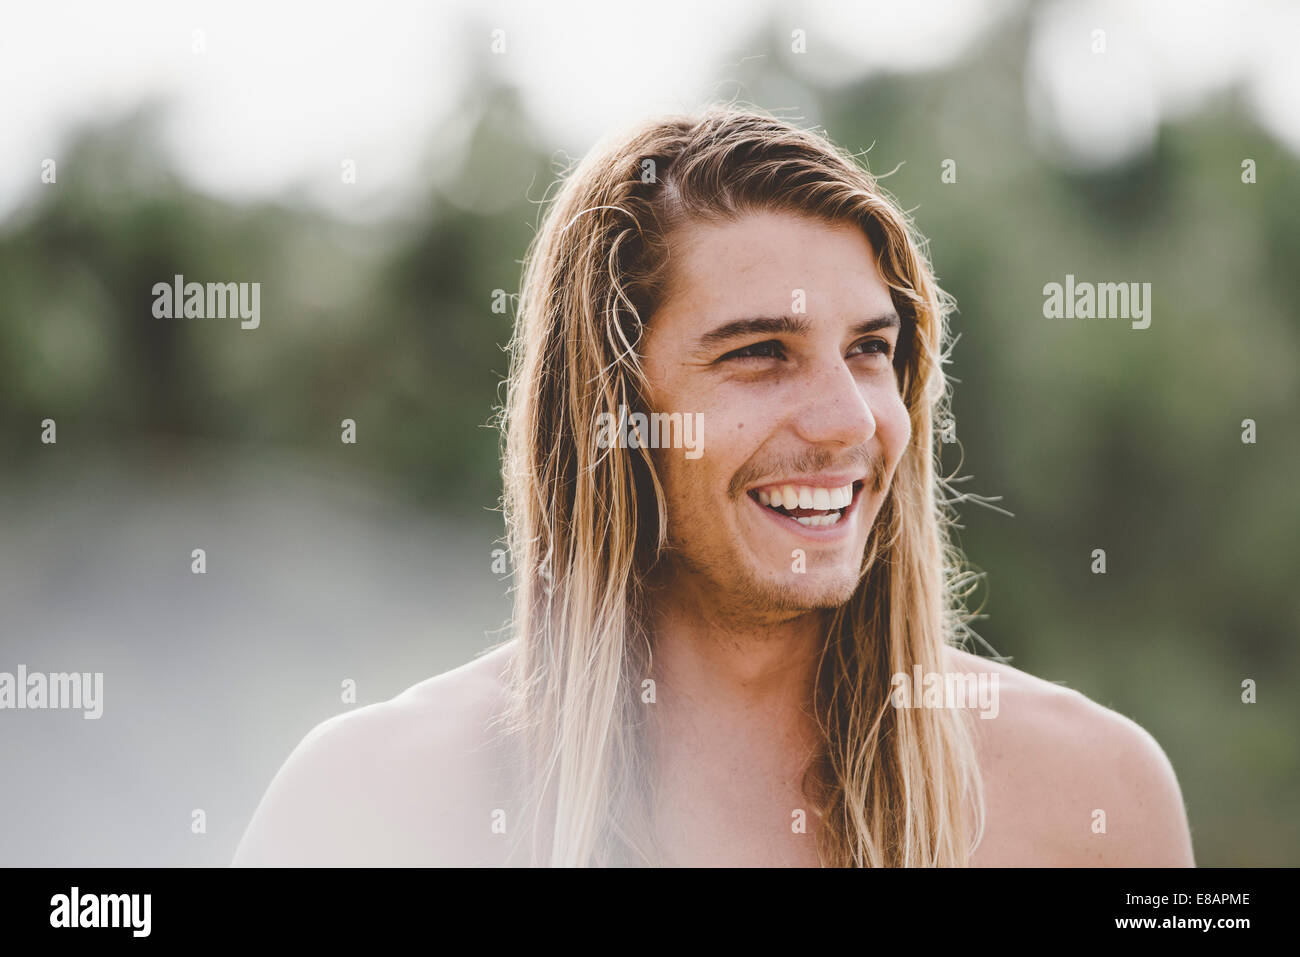 Man in long hair with wide smile - Stock Image